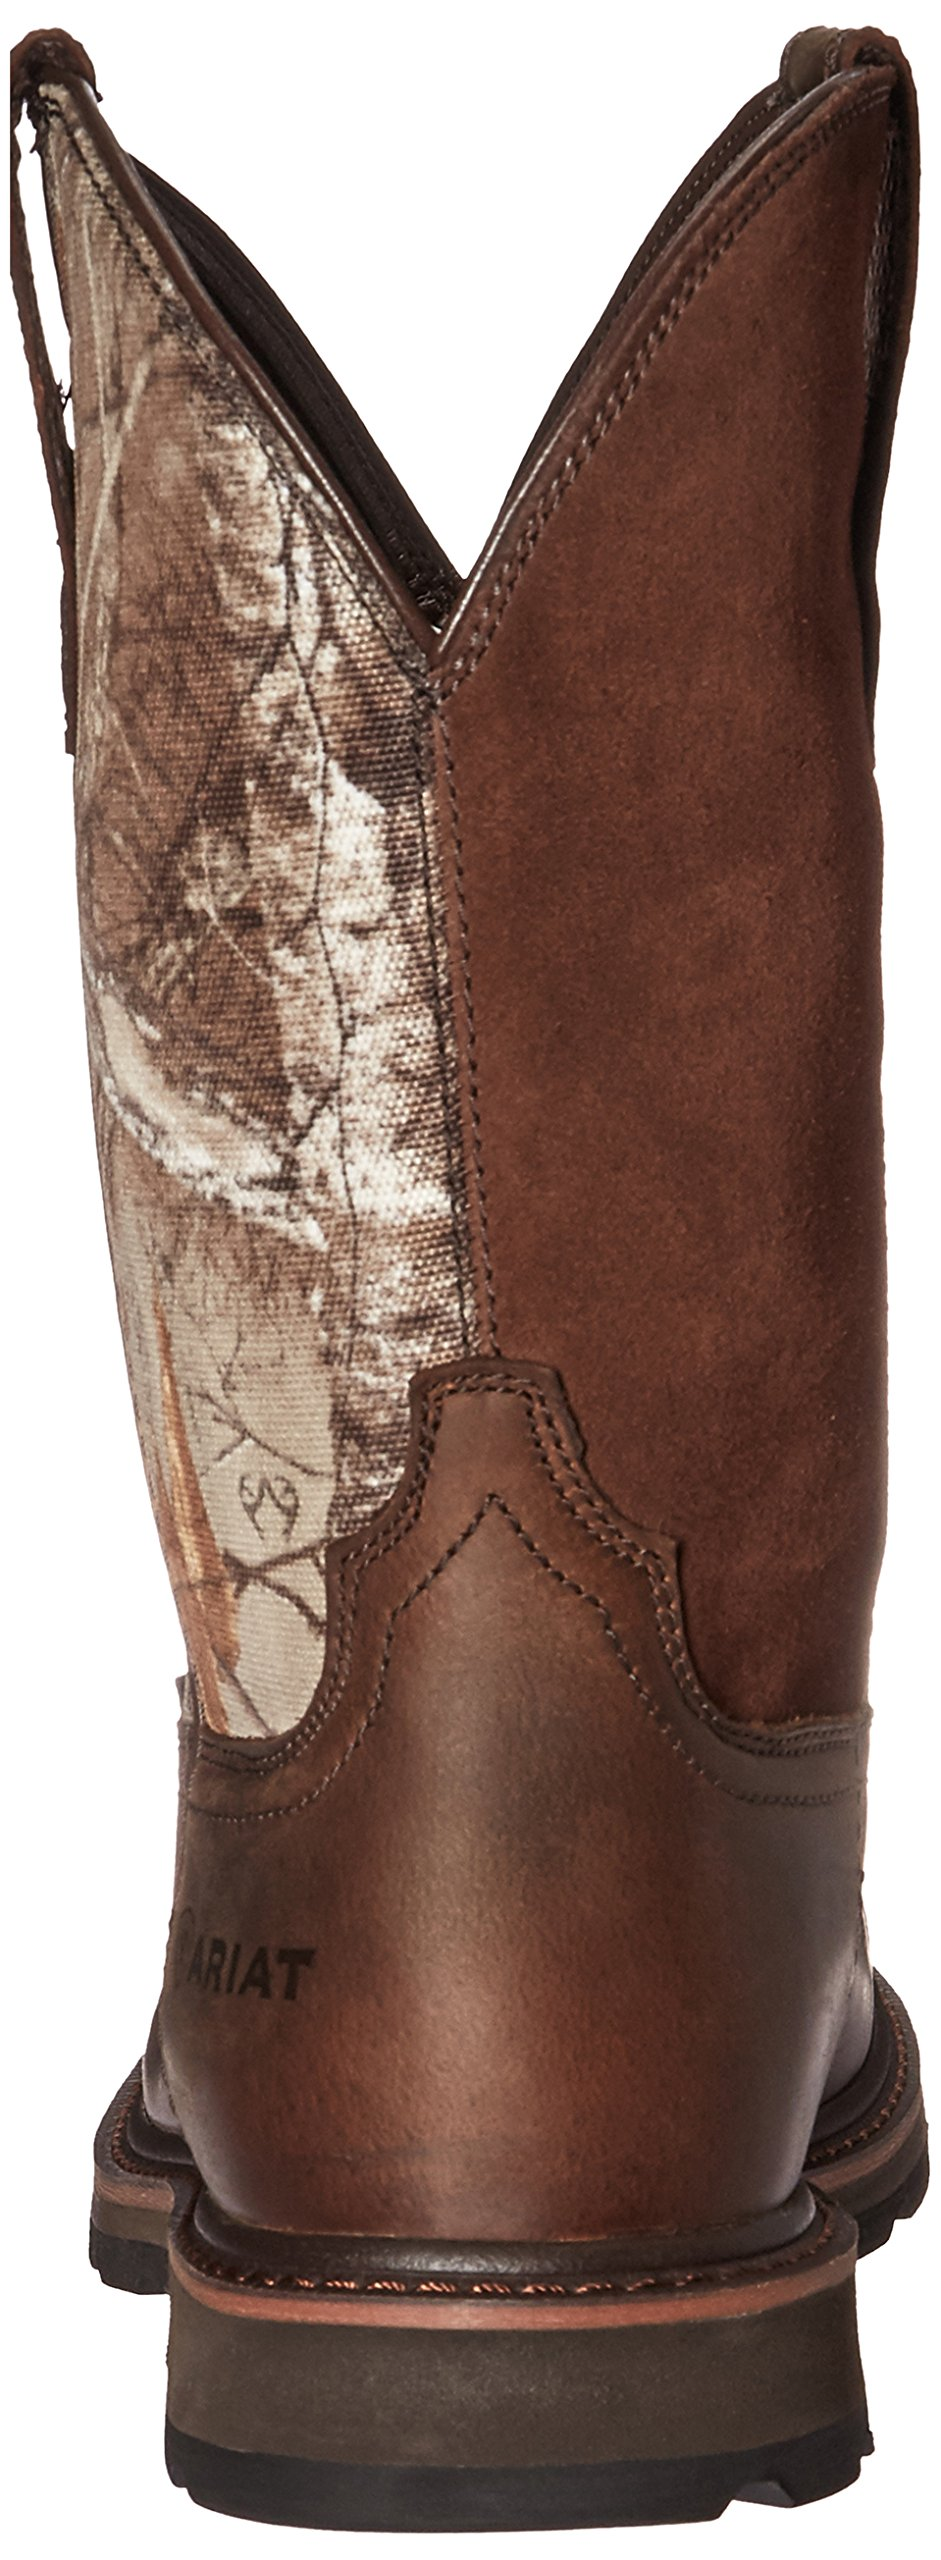 Ariat Work Men's Groundbreaker Pull-On Steel Toe Work Boot, Brown/Real Tree Extra, 7 D US by Ariat (Image #2)